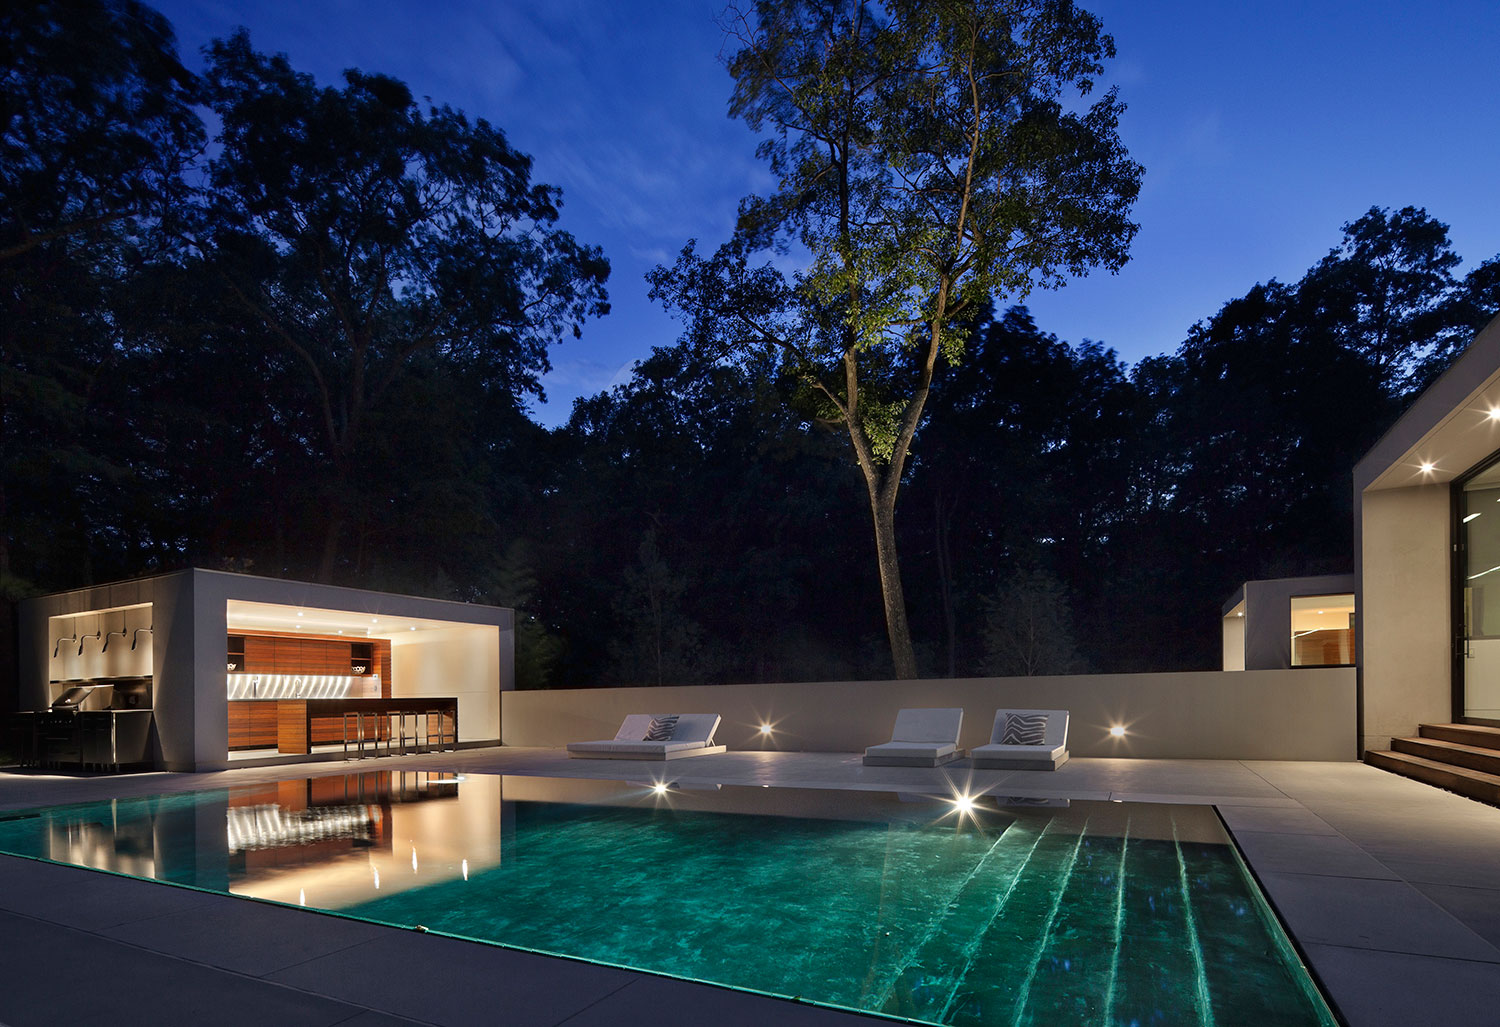 New Canaan Residence - Specht Architects